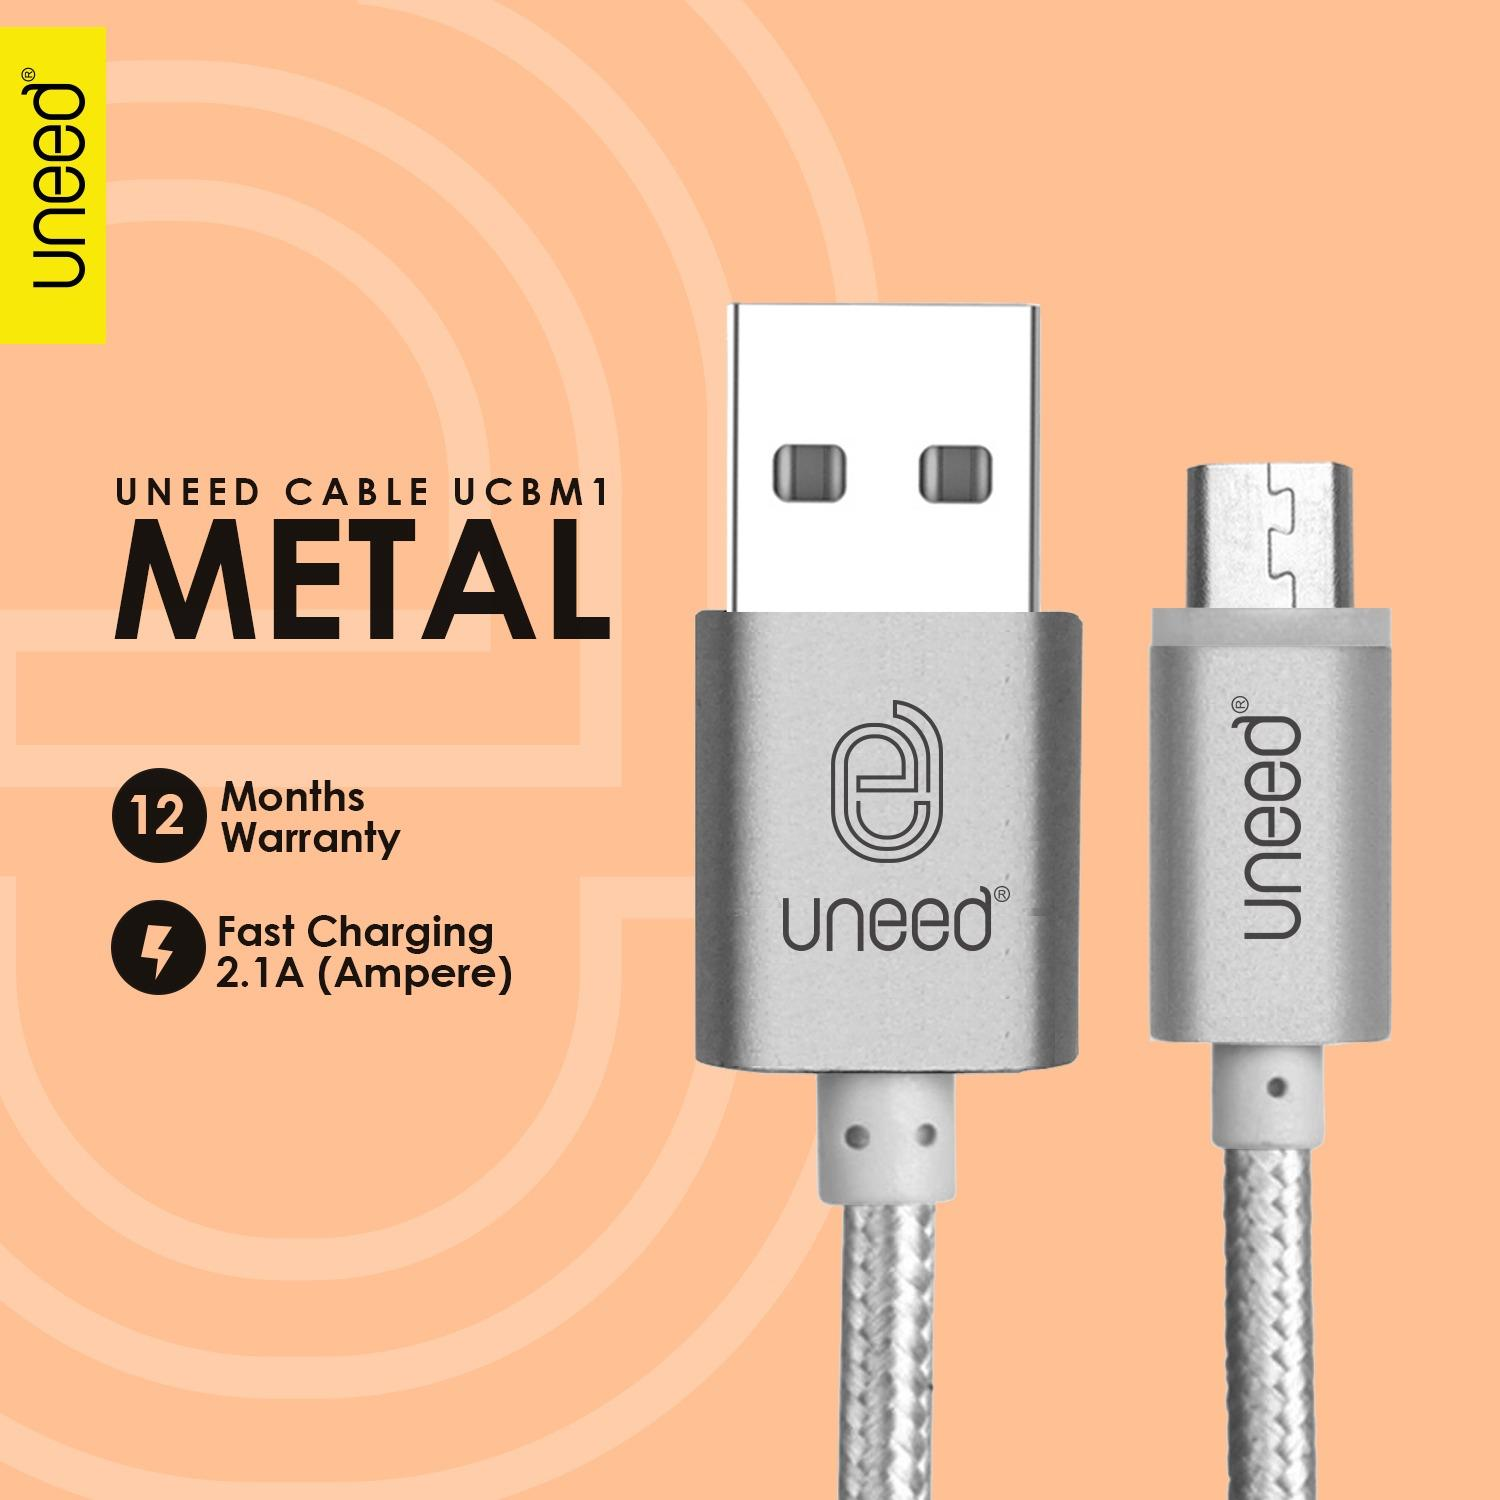 UNEED Nylon Kabel Data Micro USB Metal Quick Charge Fast Charging 2.1A - Original - Silver